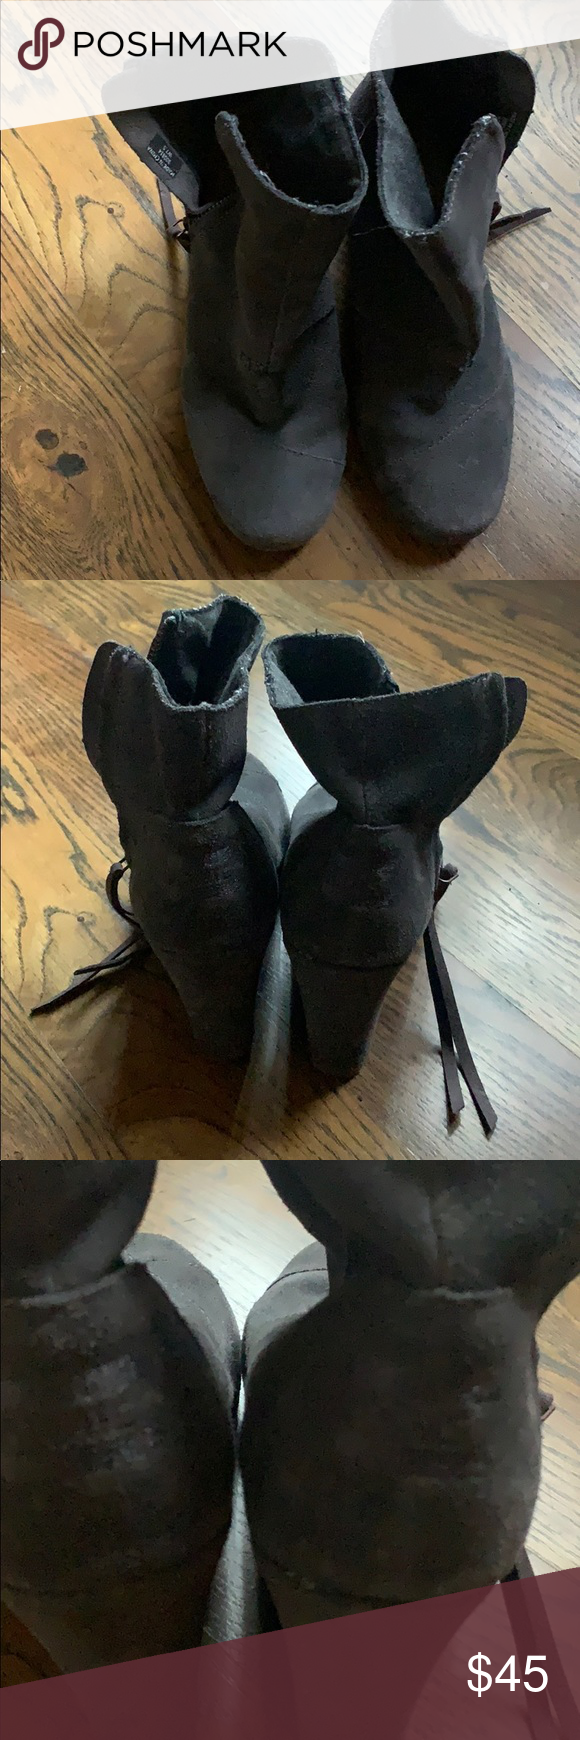 Toms wedge booties Toms wedge booties in dark gray, size 7.5. They are in very good condition. Side zippers are fully functioning. Toms Shoes Ankle Boots & Booties #tomwedges Toms wedge booties Toms wedge booties in dark gray, size 7.5. They are in very good condition. Side zippers are fully functioning. Toms Shoes Ankle Boots & Booties #tomwedges